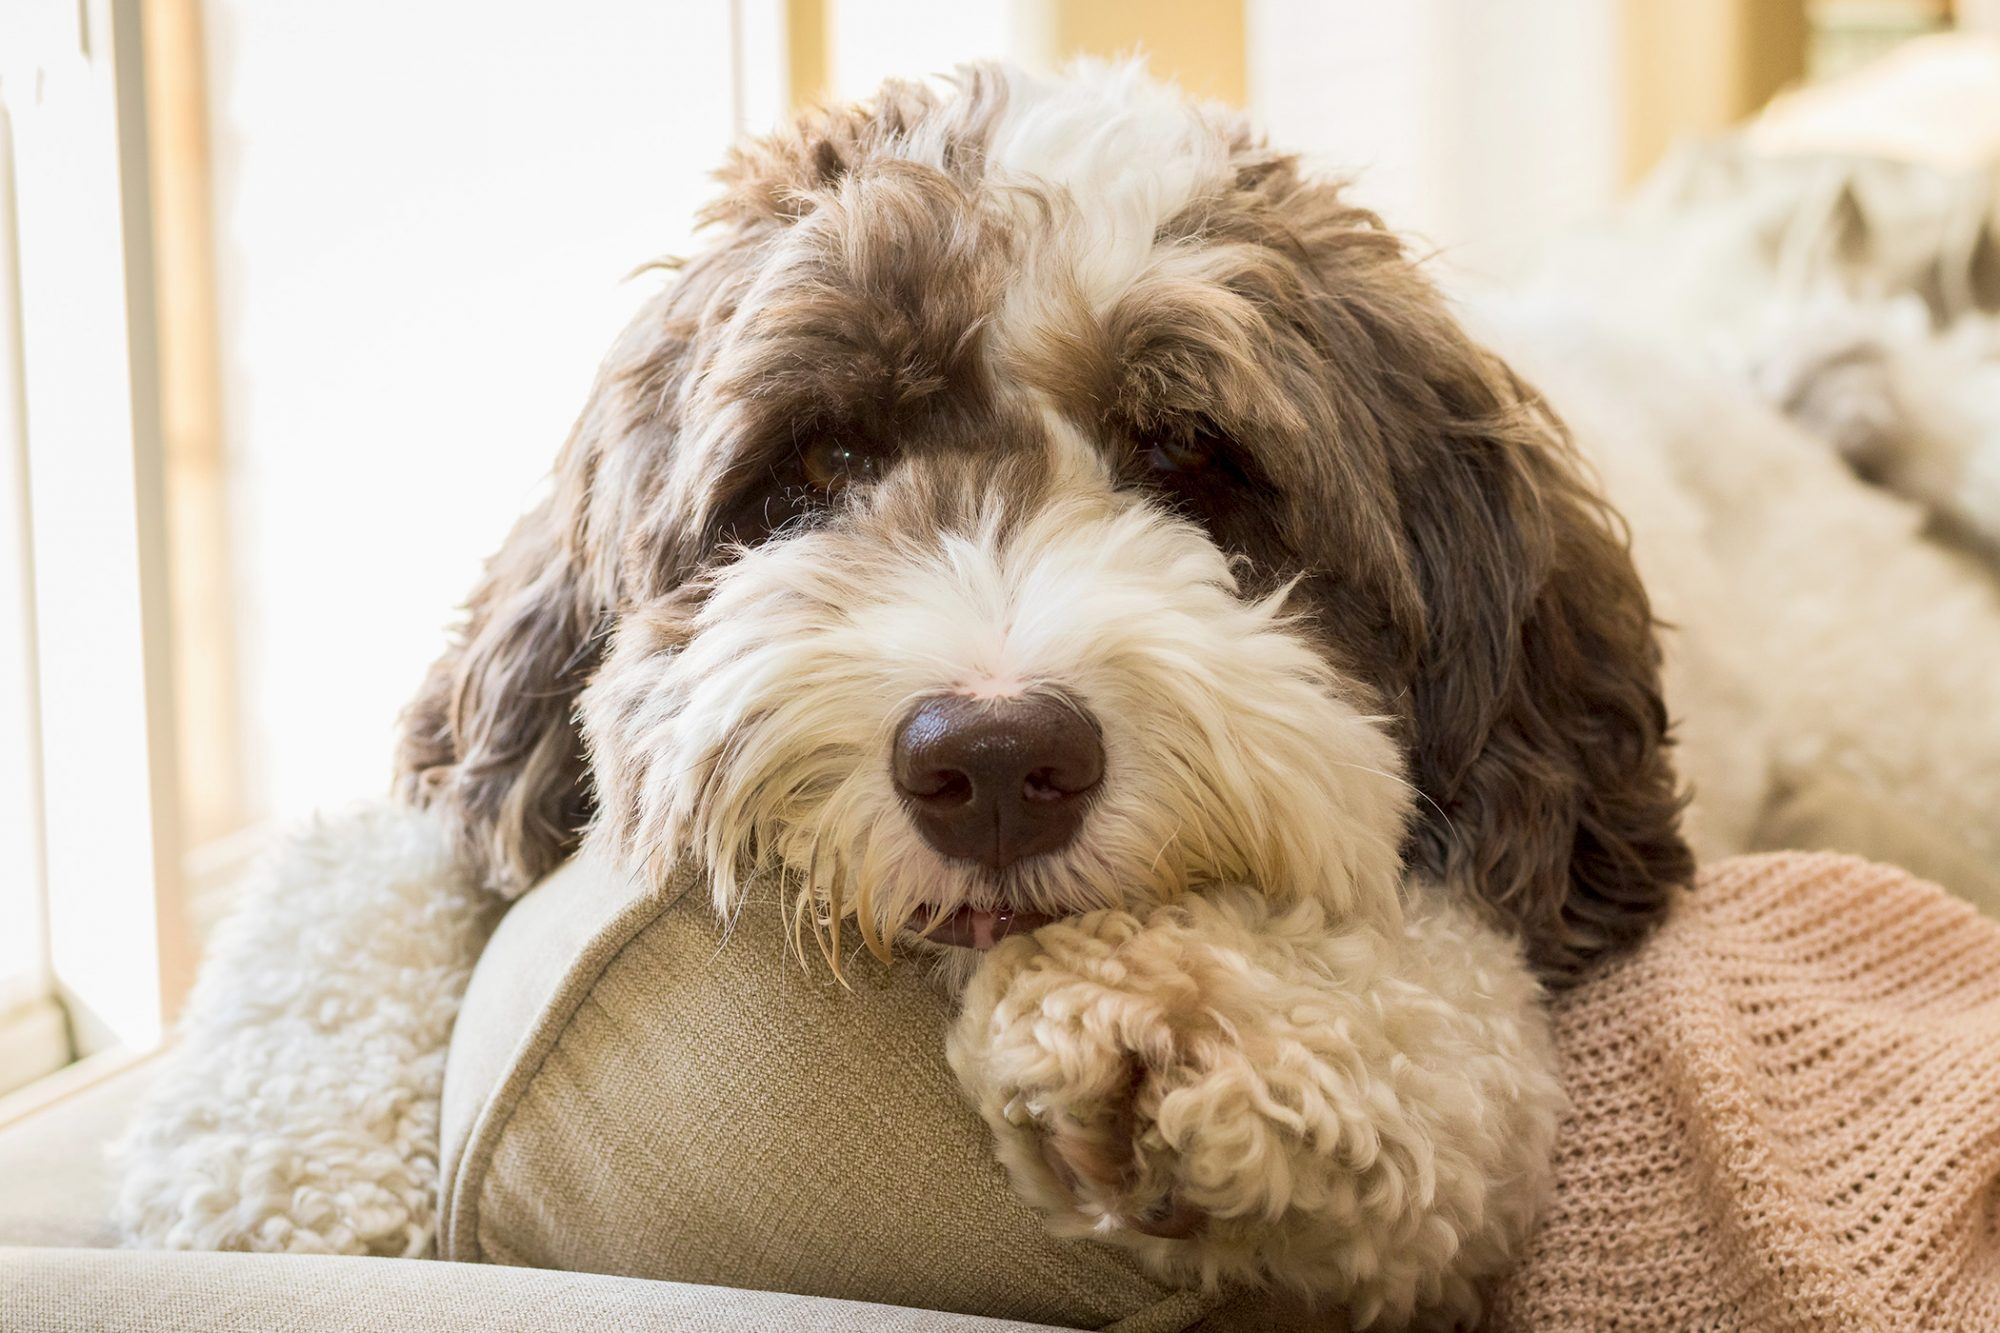 Brown and white labradoodle lays on beige couch inside